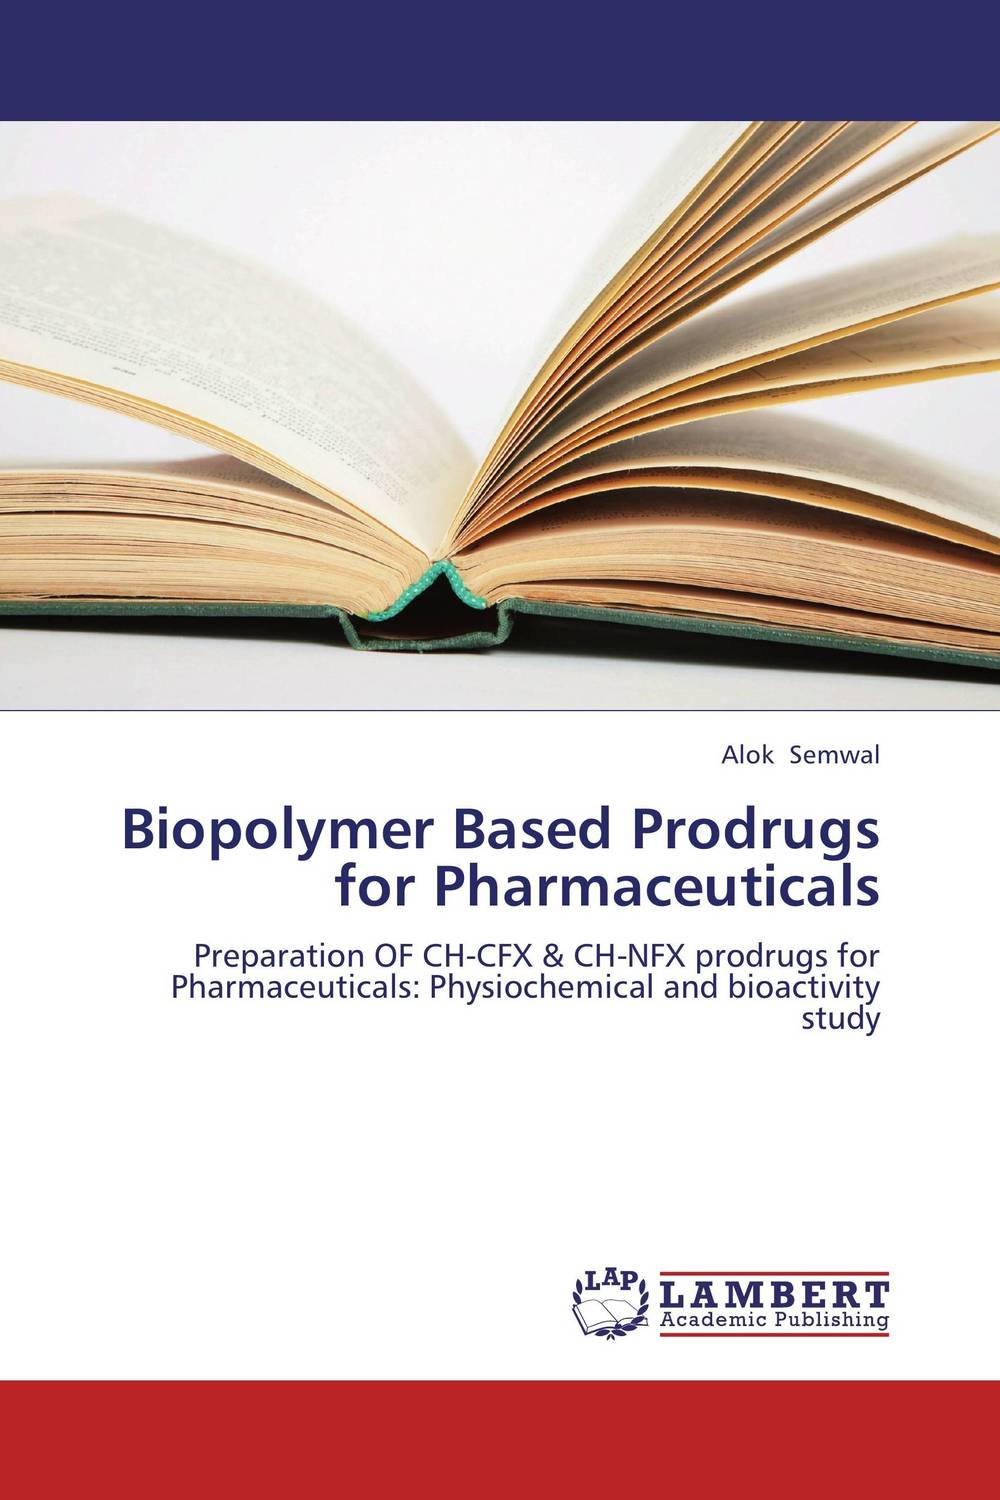 Biopolymer Based Prodrugs for Pharmaceuticals patentability of pharmaceuticals